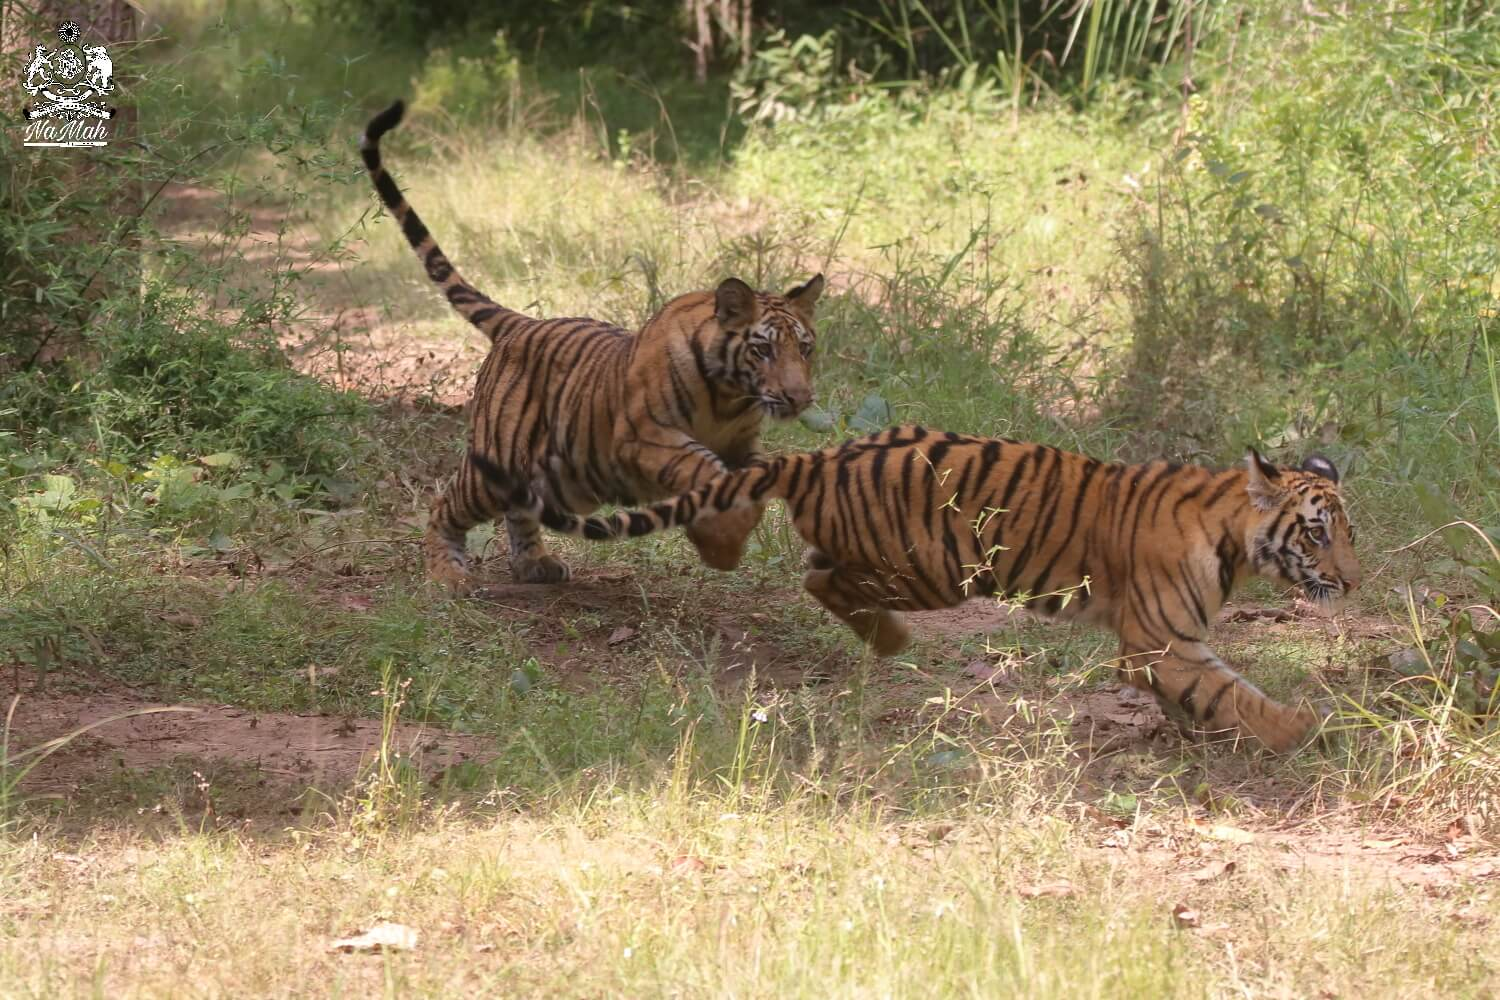 Tiger cubs playing in forest of Bandhavgarh